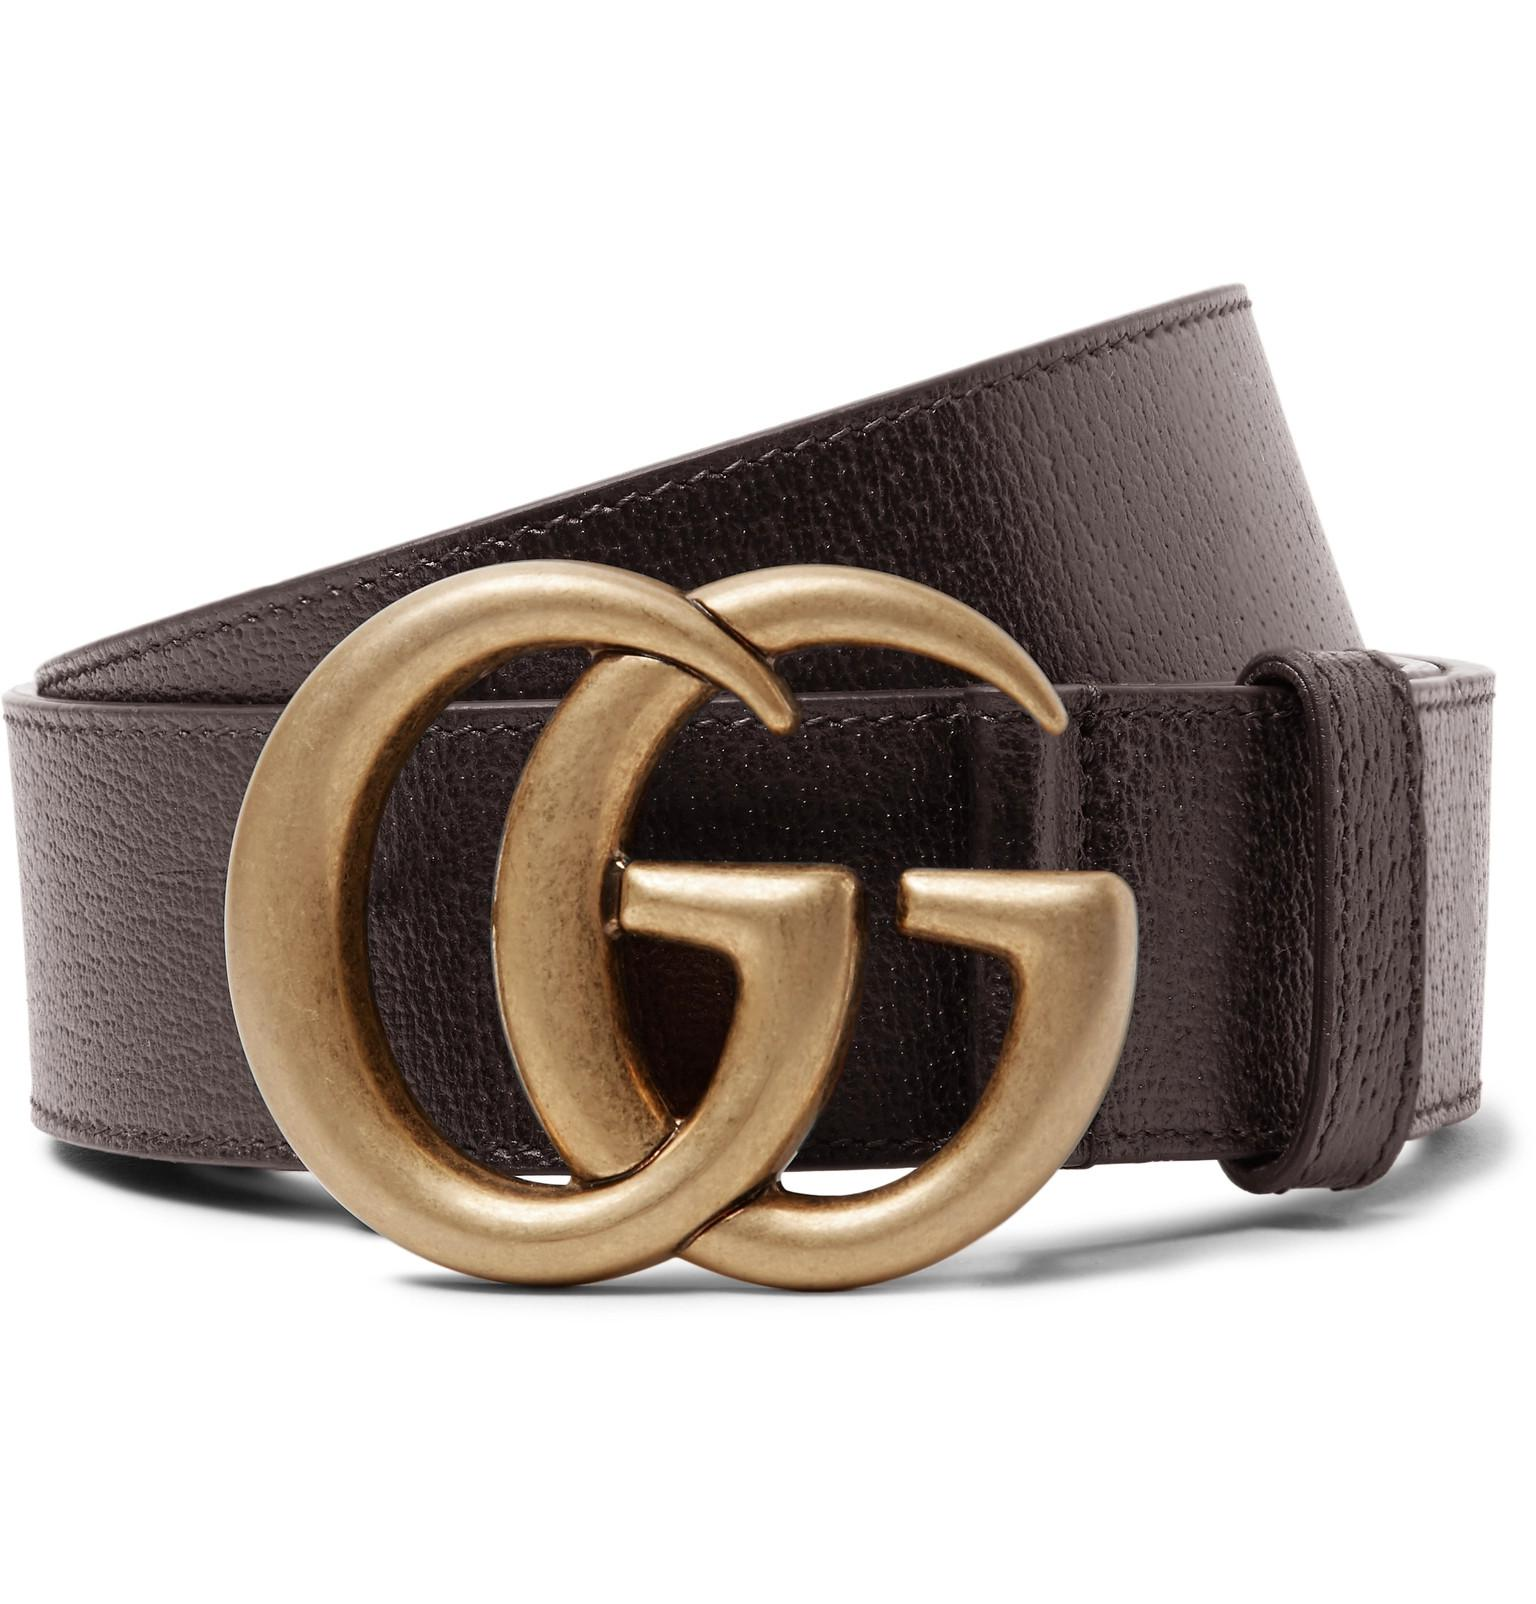 d748d41382b Gucci 4cm Dark-brown Full-grain Leather Belt in Brown for Men - Lyst